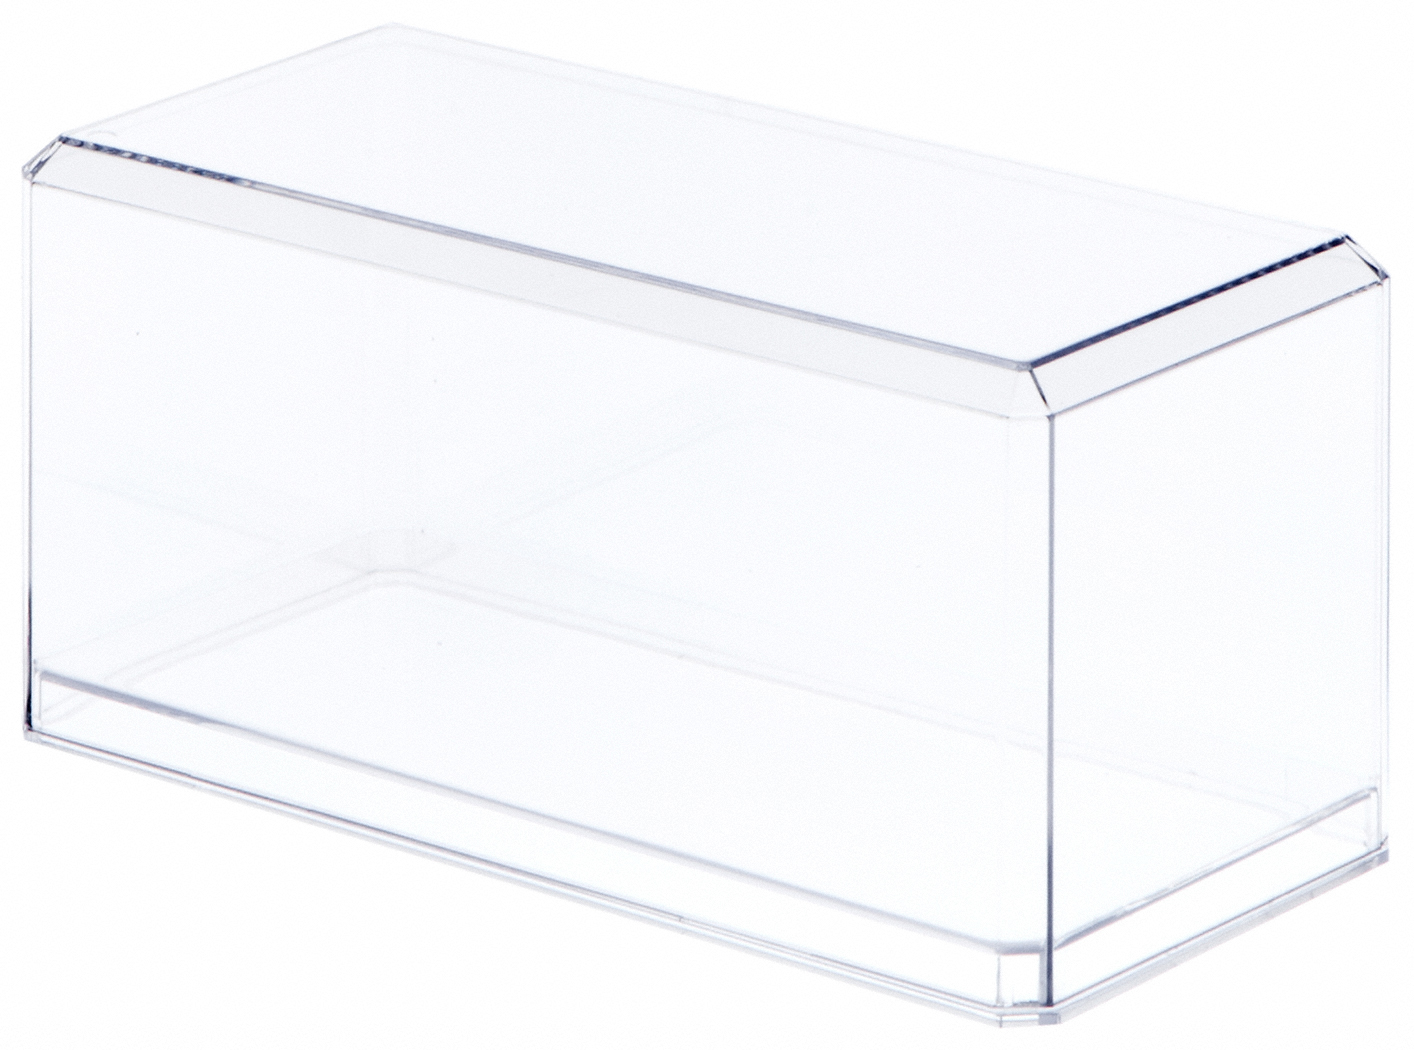 """Pioneer Plastics Acrylic Case for 1:32 Scale Cars 8/"""" x 3.75/"""" x 3.875/"""" 9 Pack"""